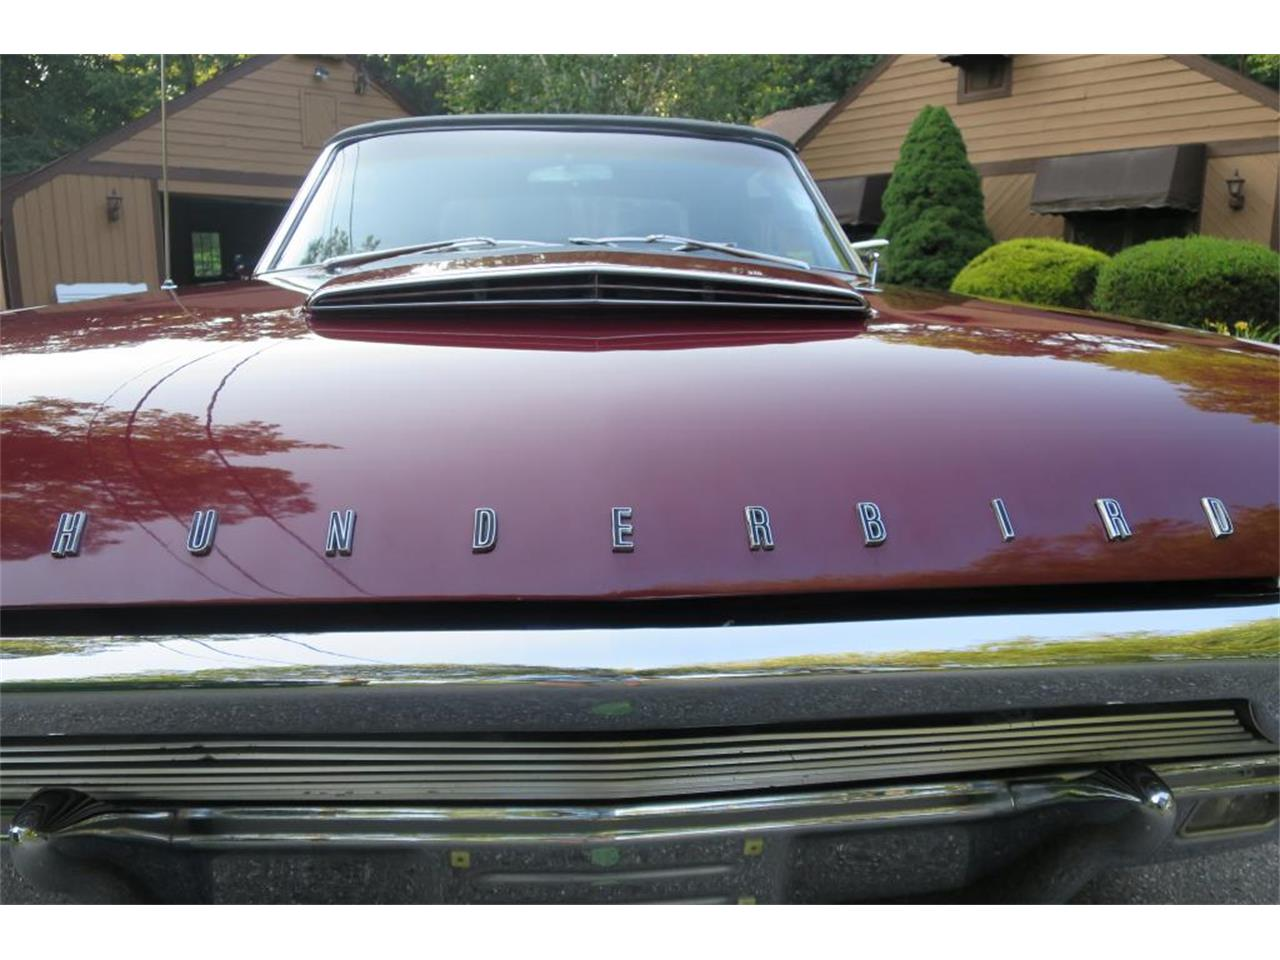 Large Picture of Classic 1964 Thunderbird located in Milford City Connecticut Auction Vehicle Offered by Napoli Classics - LHHL